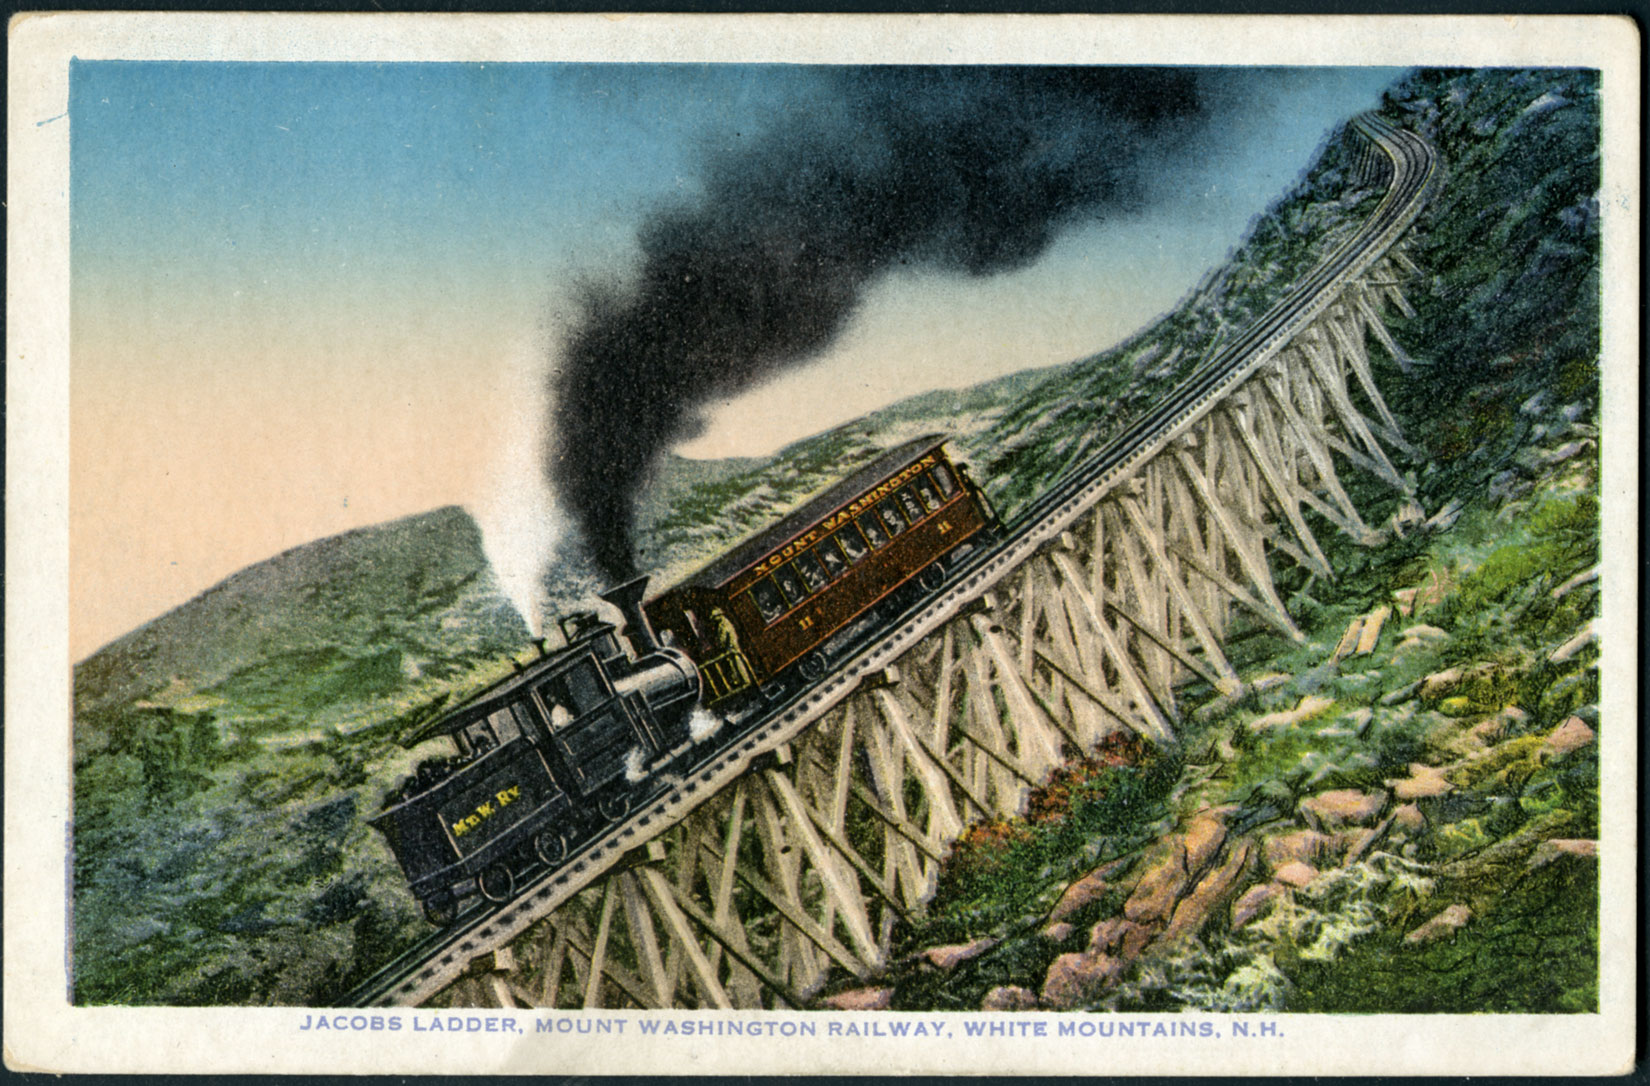 A color postcard of a train with one passenger car has a caption reading